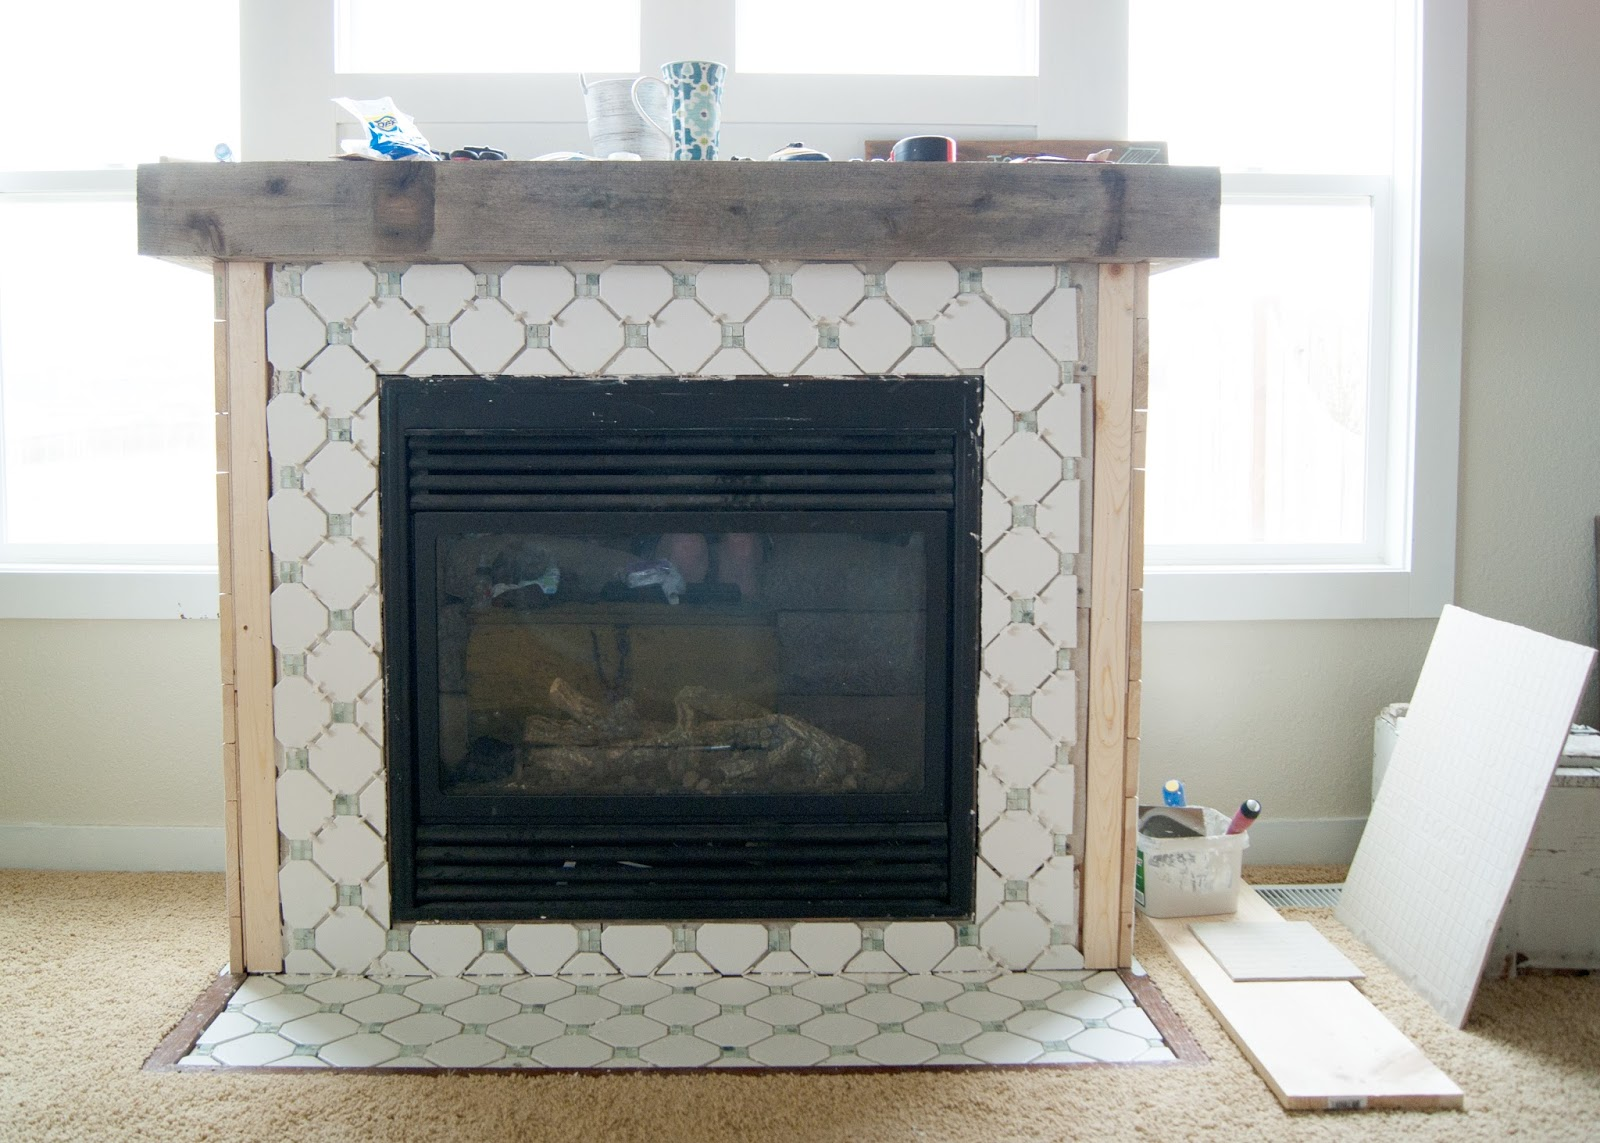 Tiling a fireplace - octagon and dot pattern